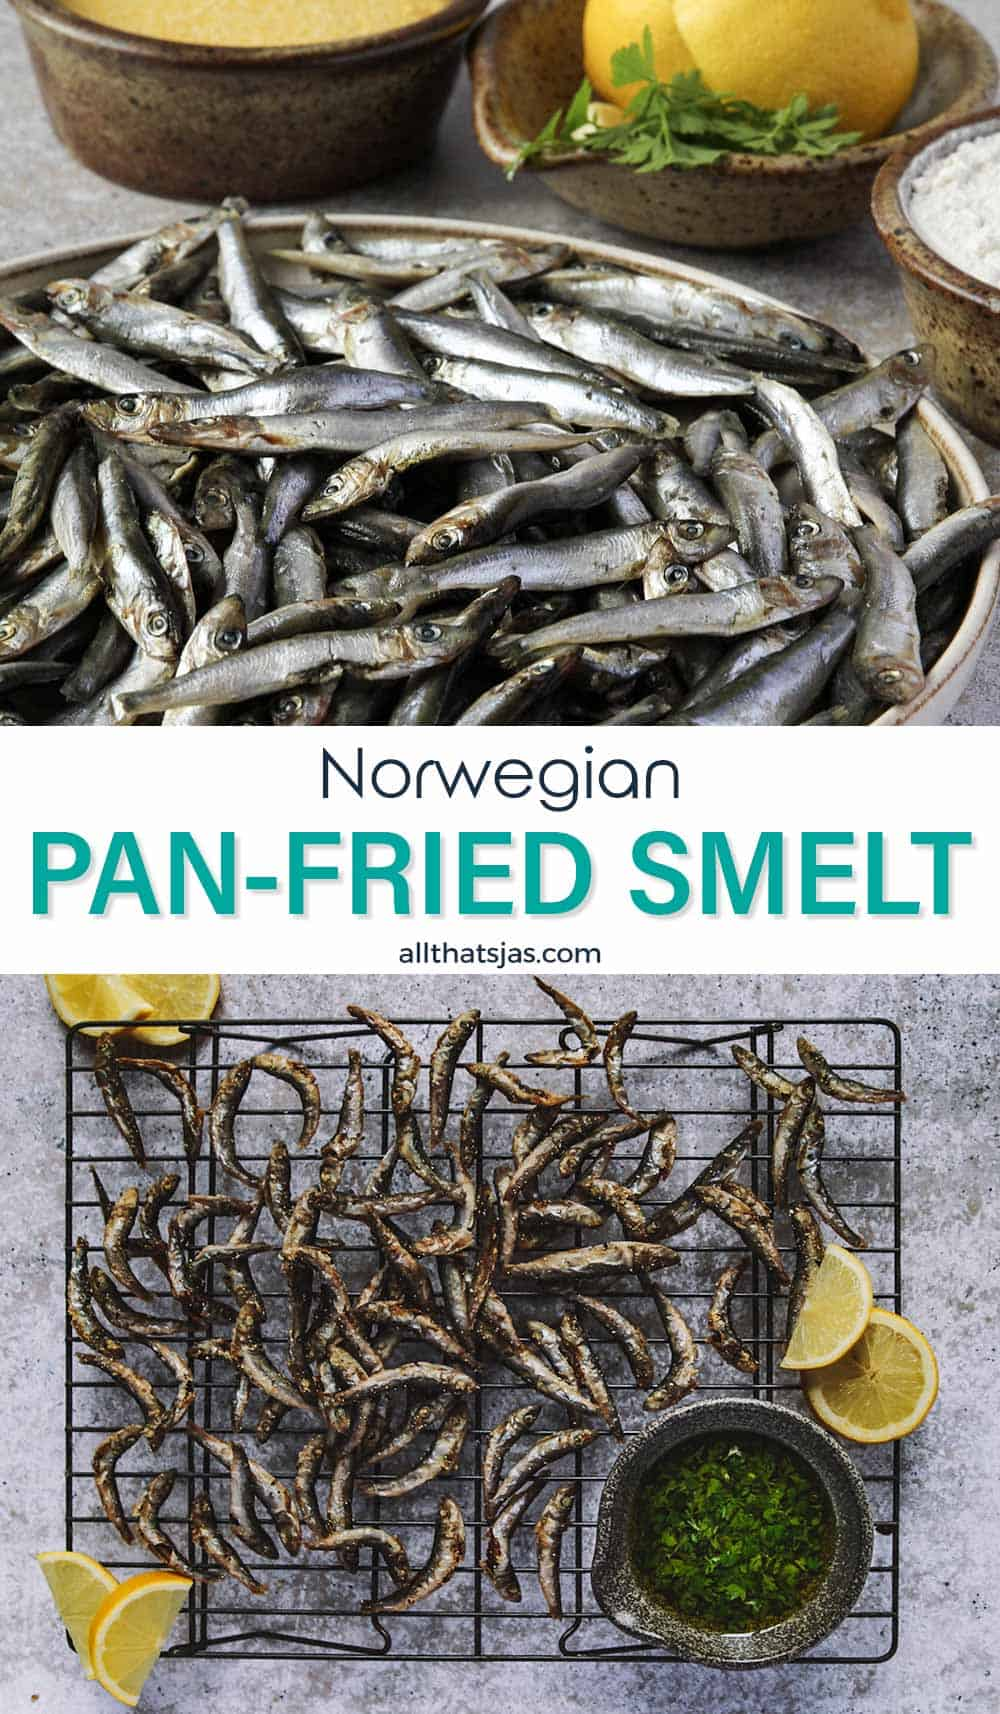 Two photo image of Norwegian pan fried smelt recipe and text overlay in the middle